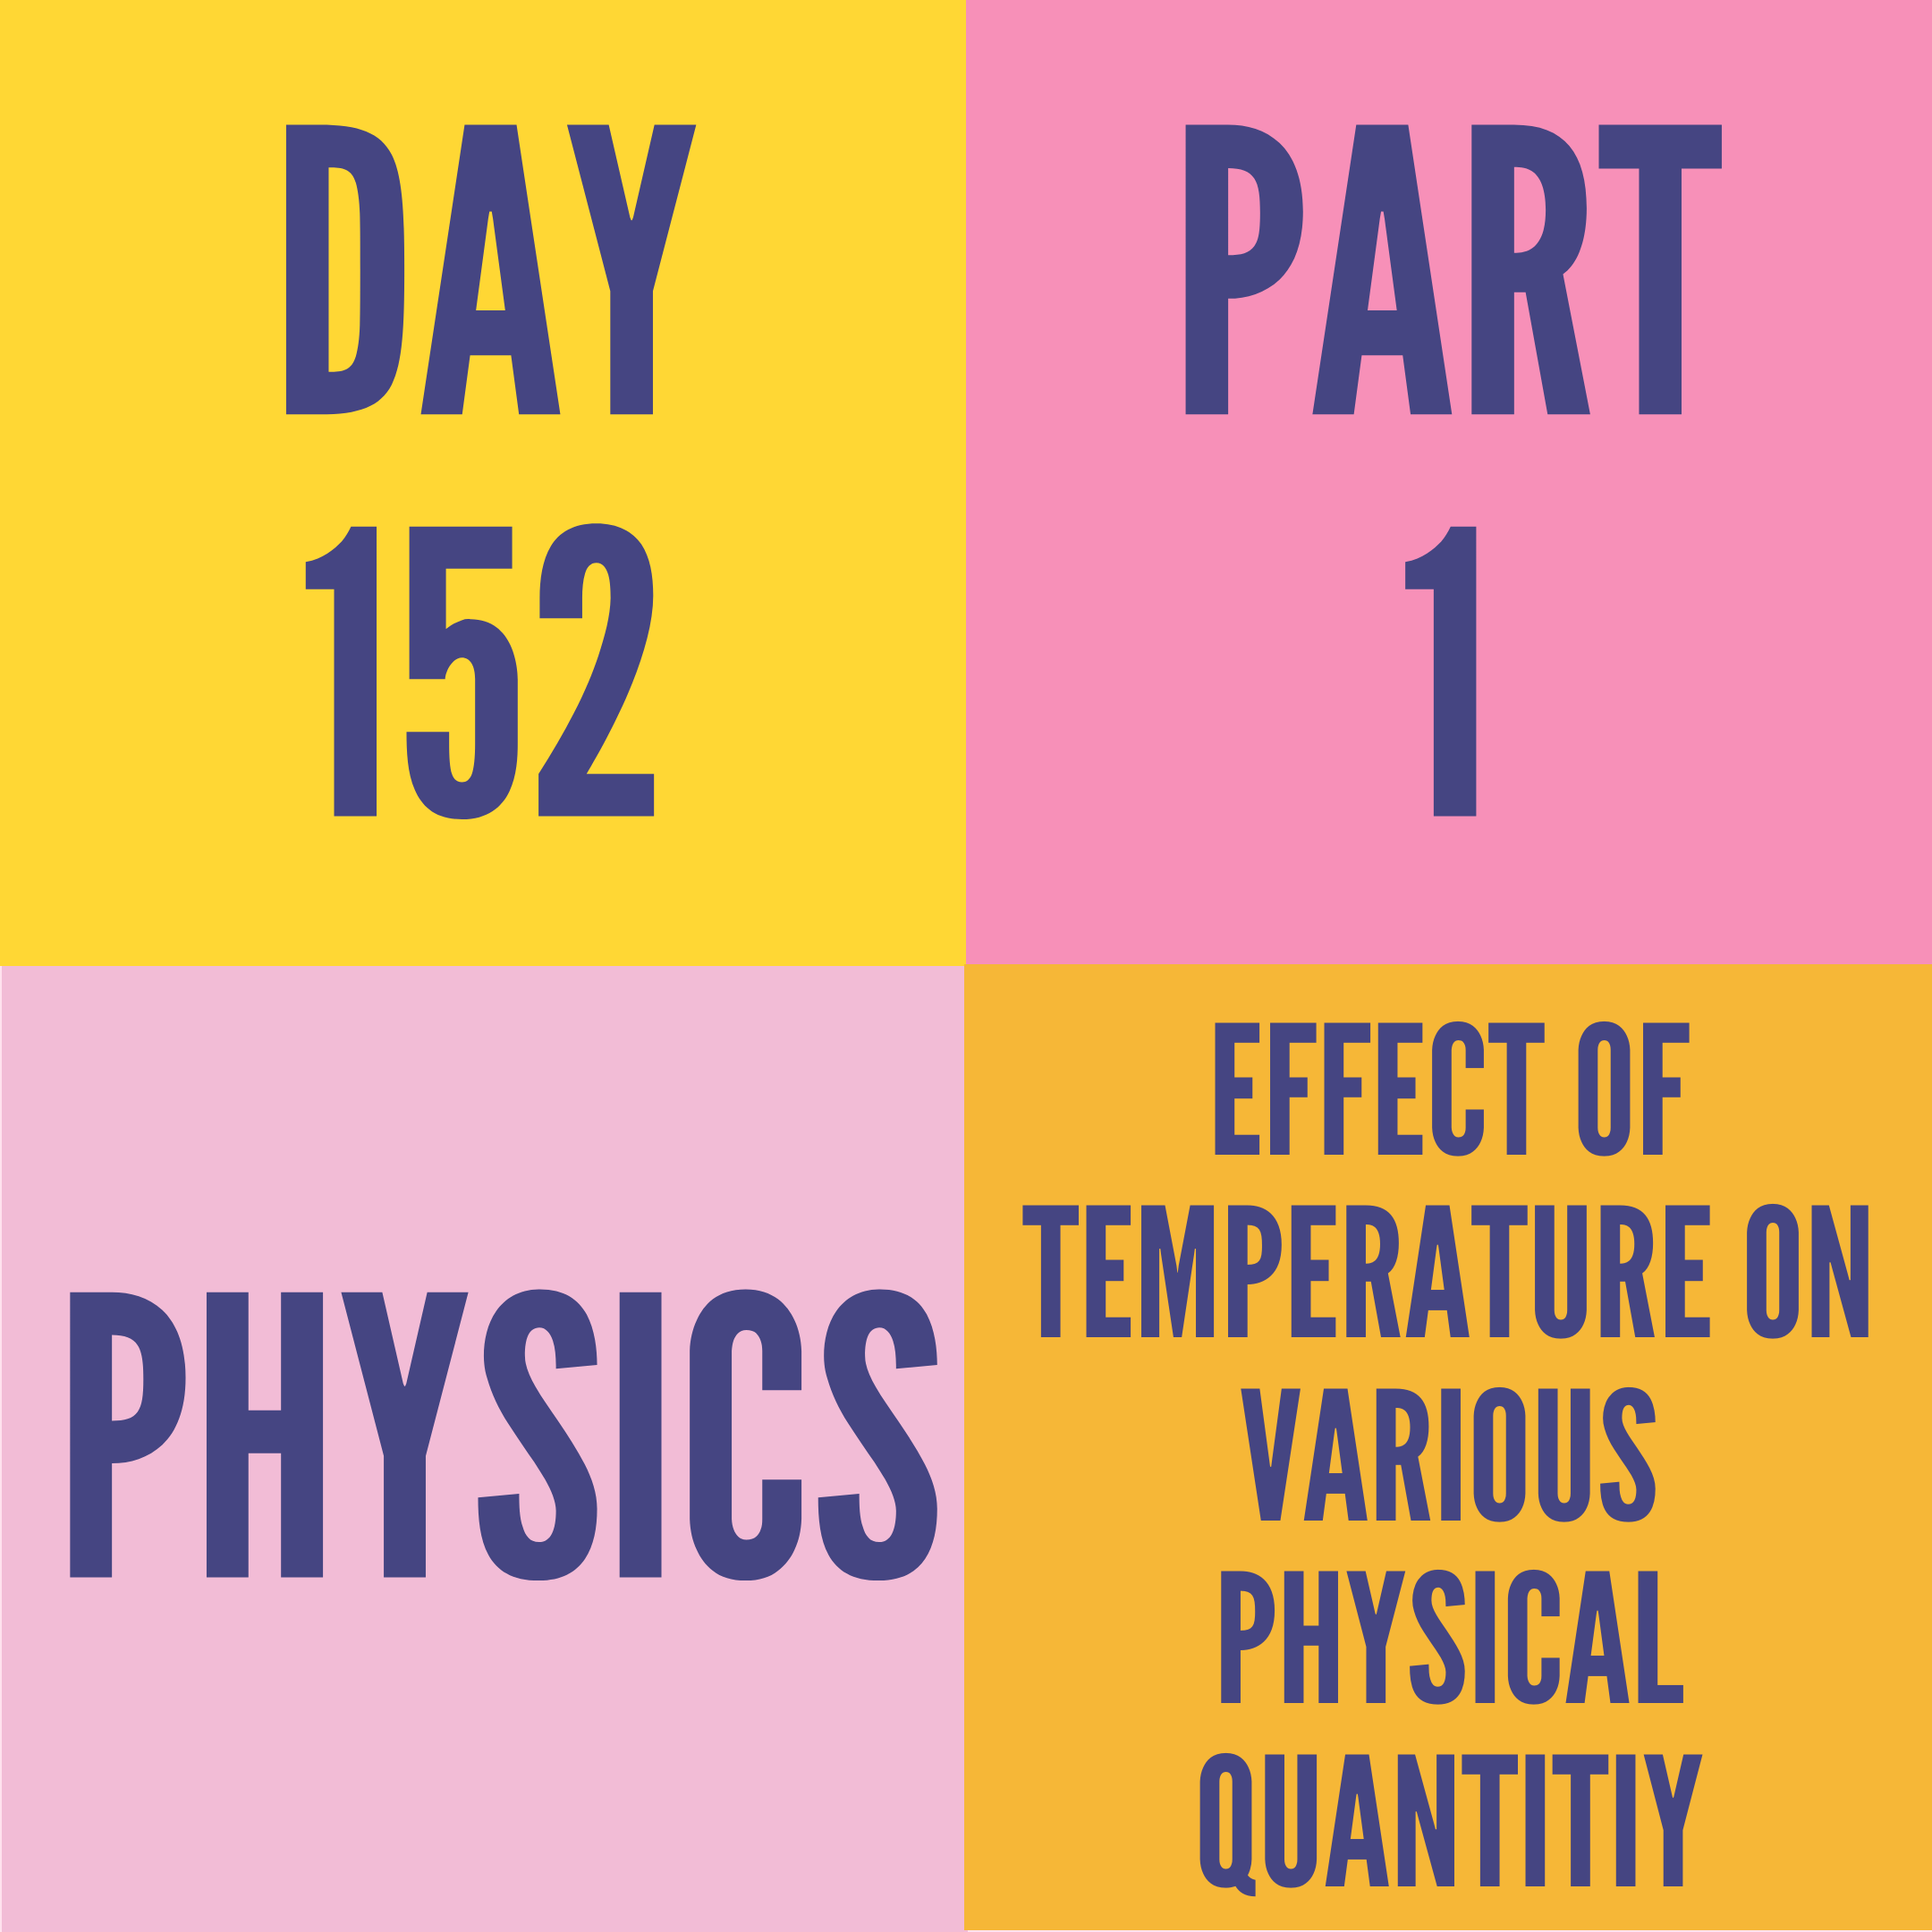 DAY-152 PART-1 EFFECT OF TEMPERATURE ON VARIOUS PHYSICAL QUANTITIY